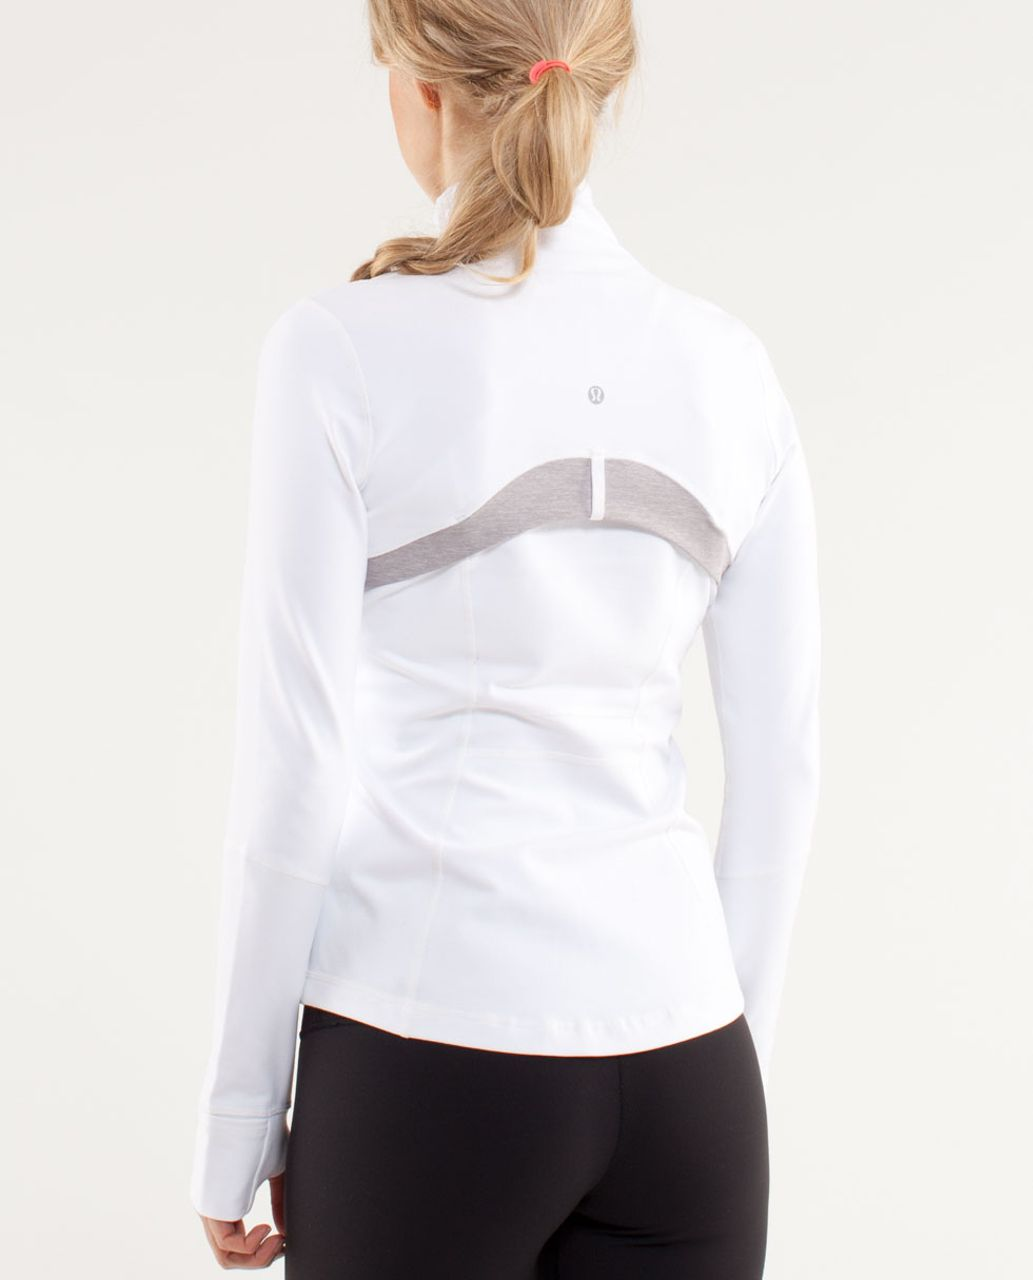 Lululemon Define Jacket - White / Metallic Silver